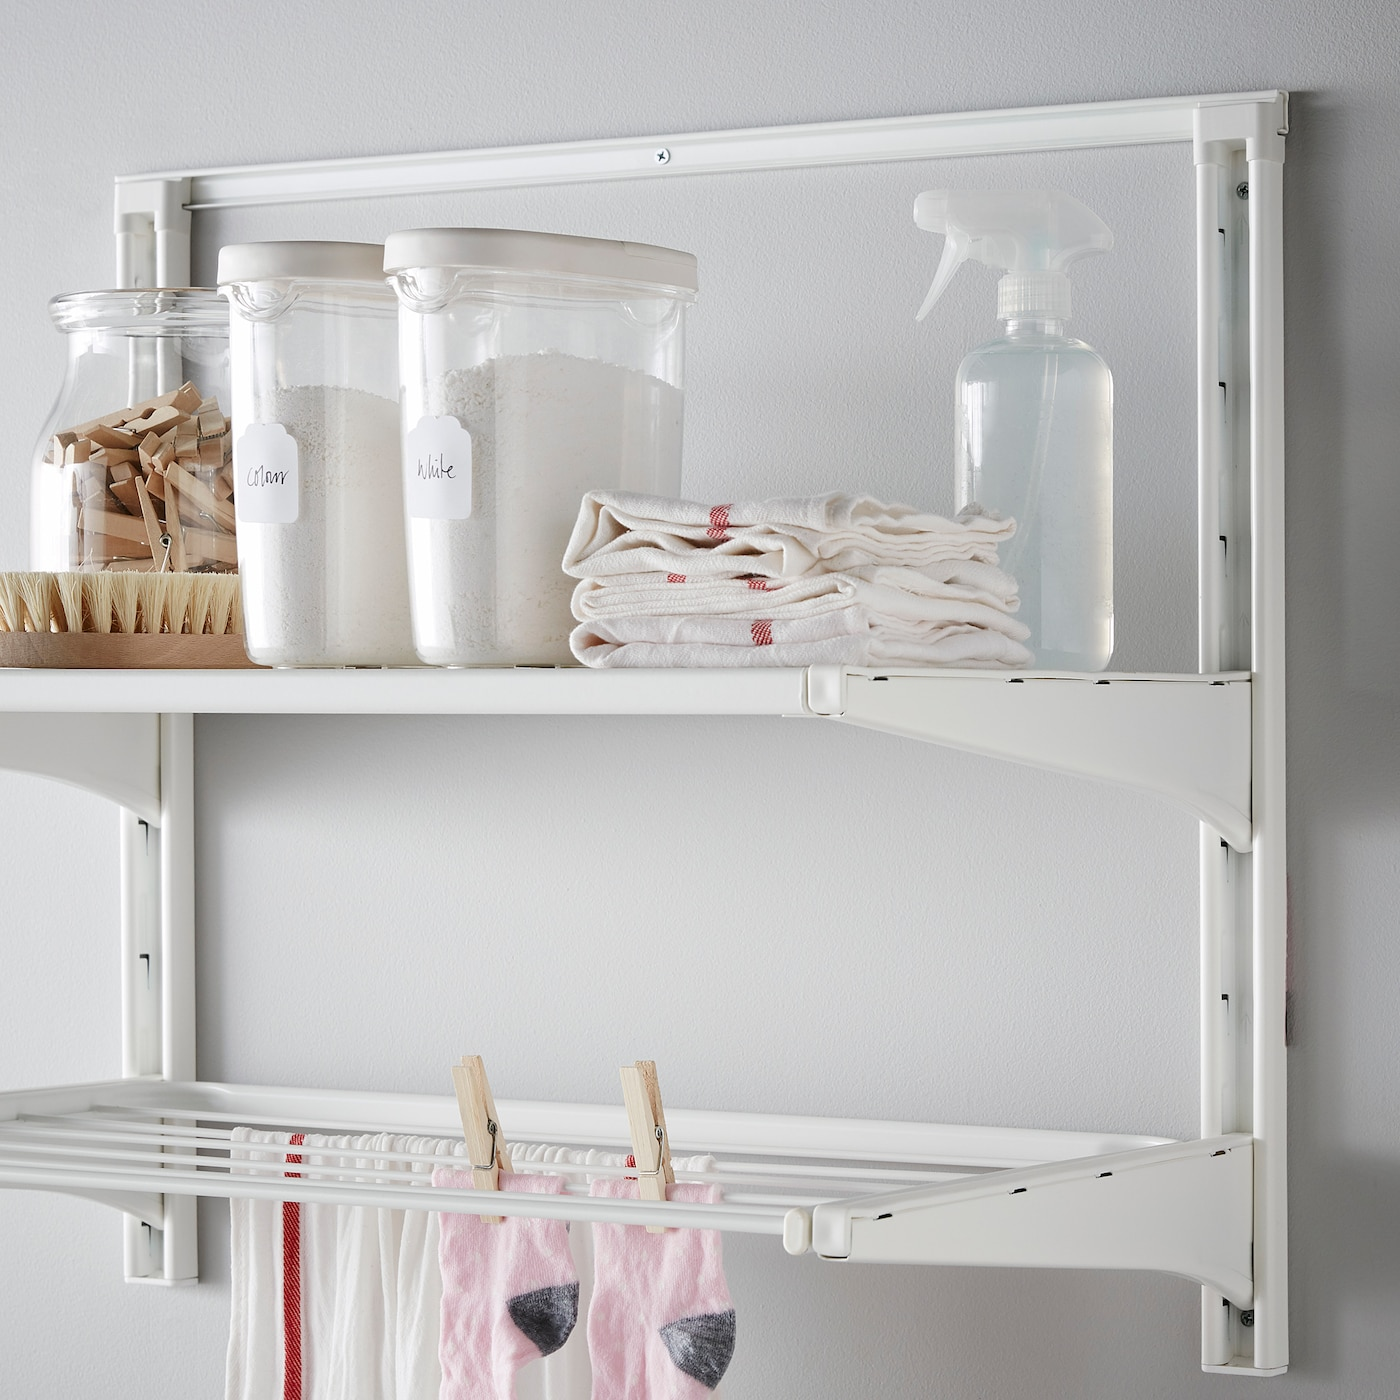 Ikea Algot Wall Upright with Shelves as